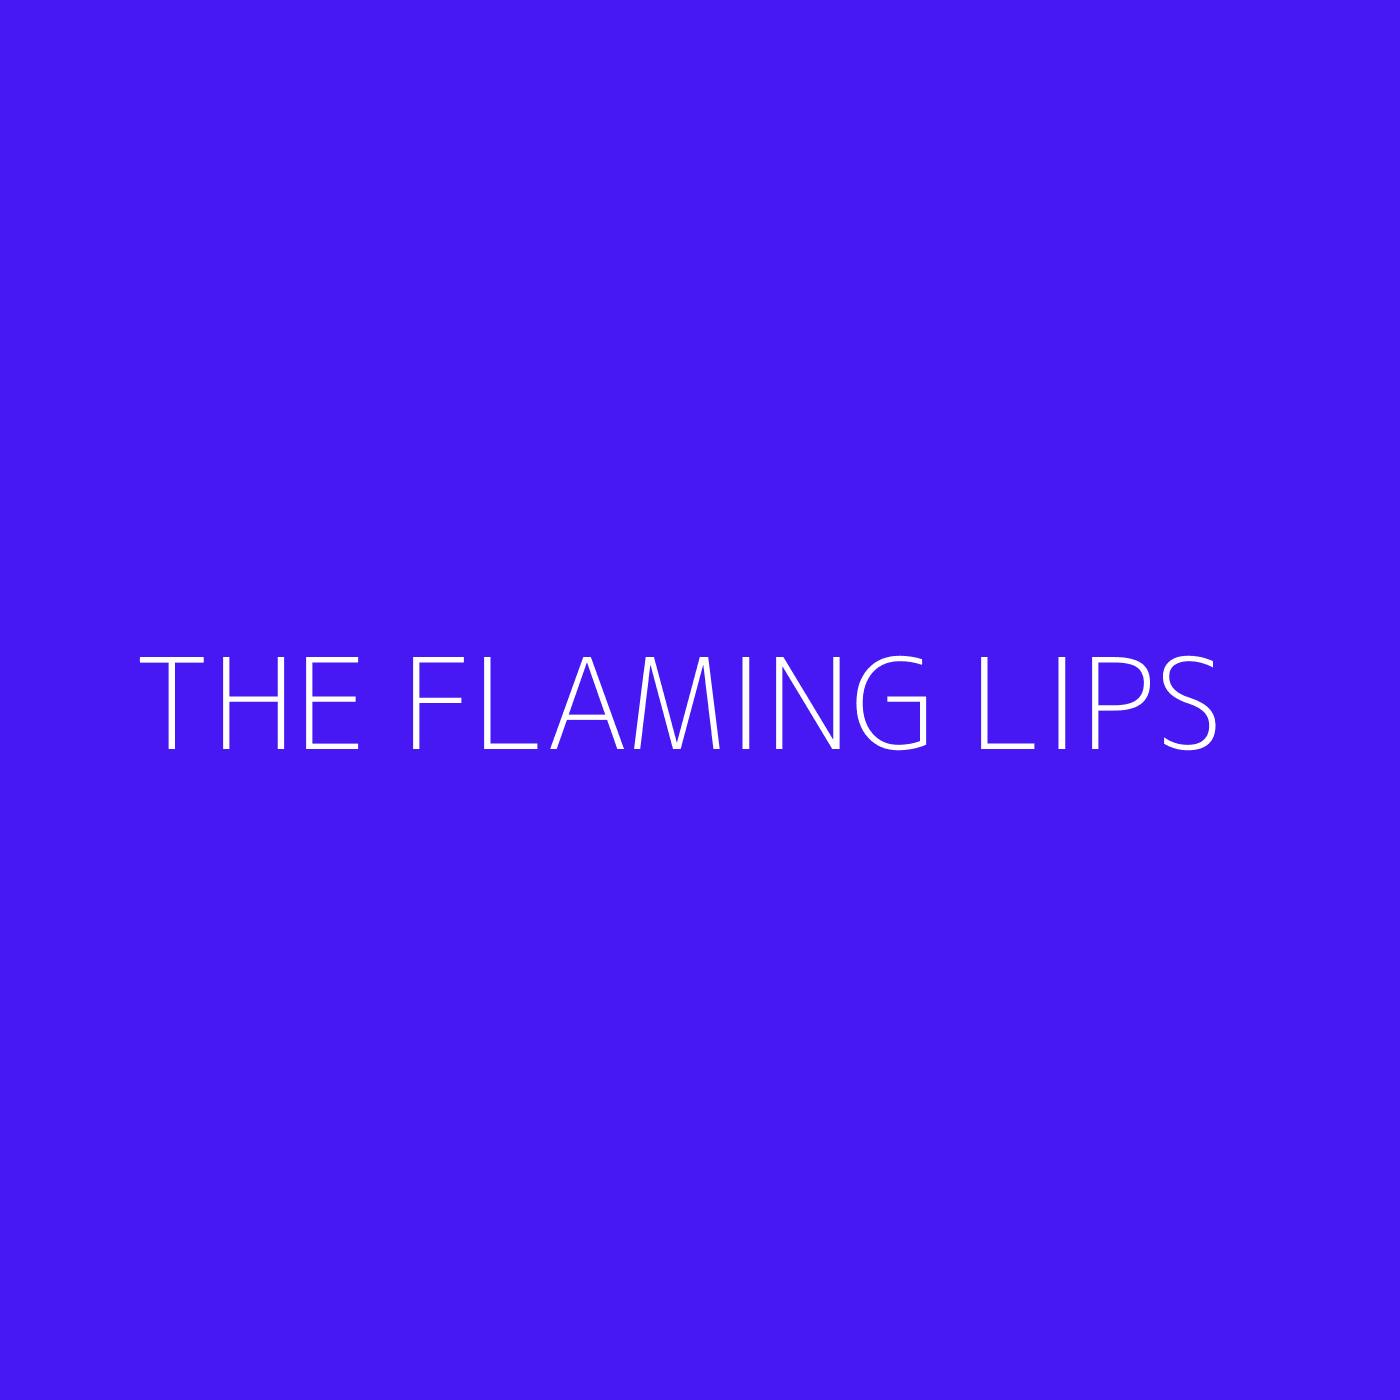 The Flaming Lips Playlist Artwork